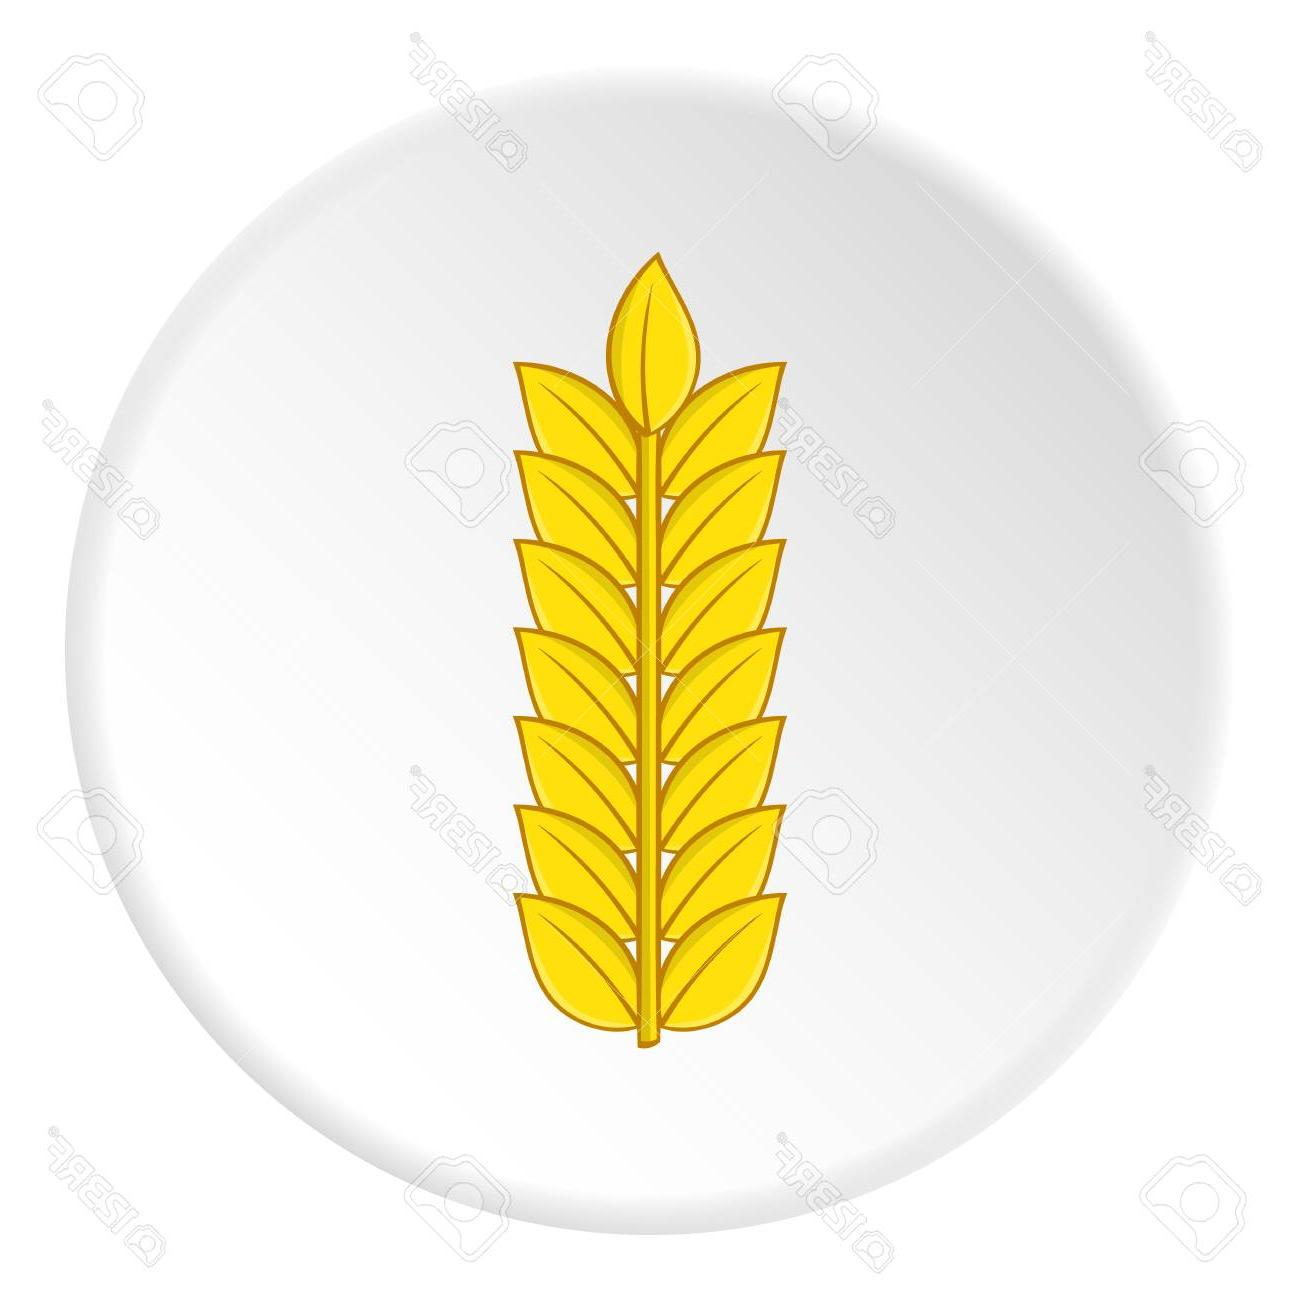 1300x1300 Hd Cartoon Wheat Vector Design Free Vector Art, Images, Graphics